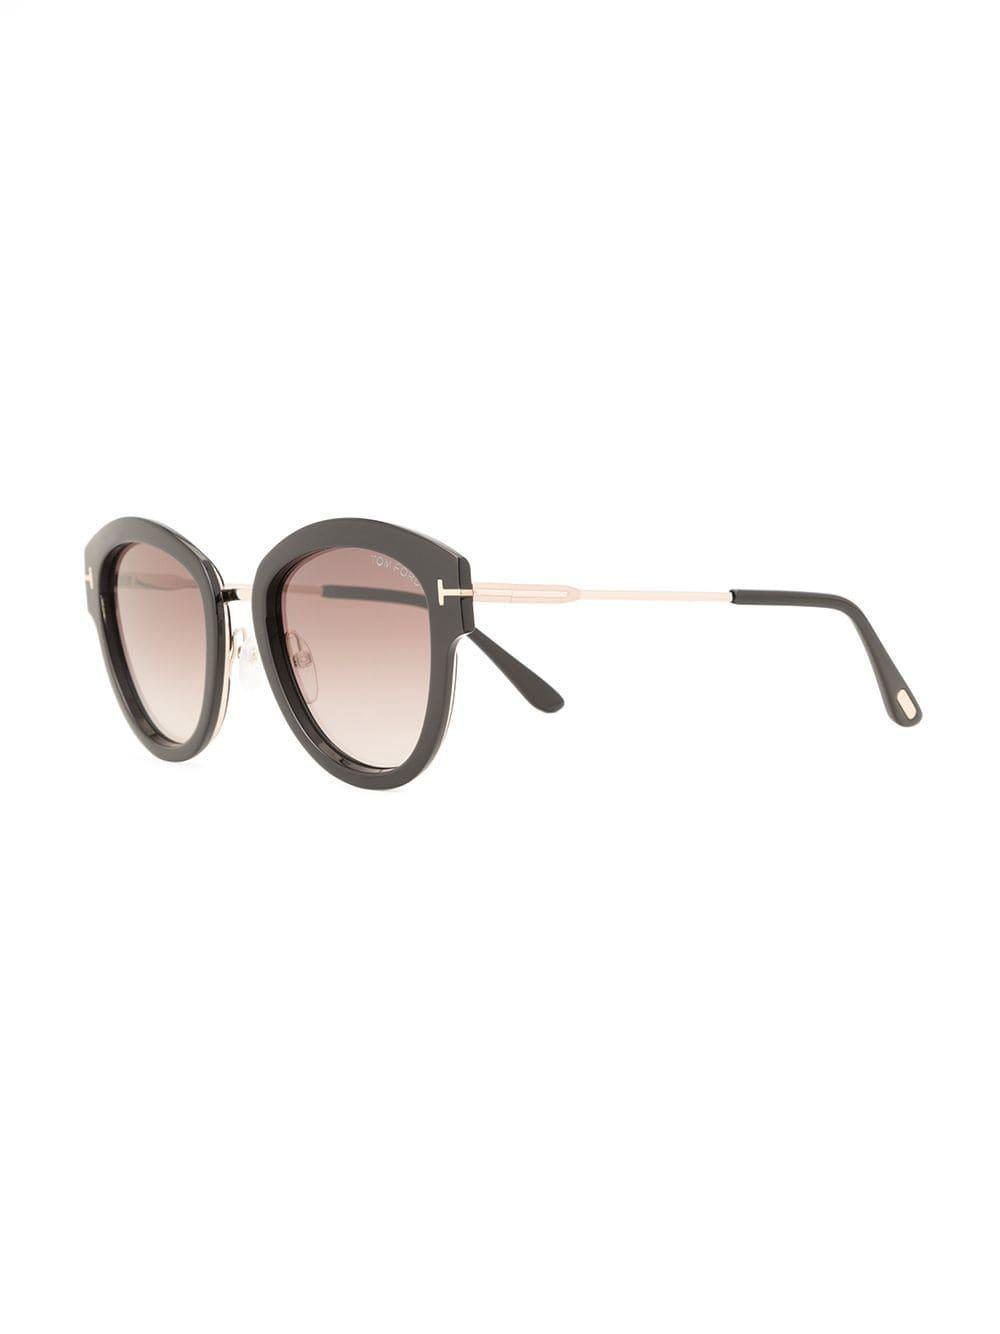 c97244a648 Tom Ford Round Frame Sunglasses in Black - Lyst